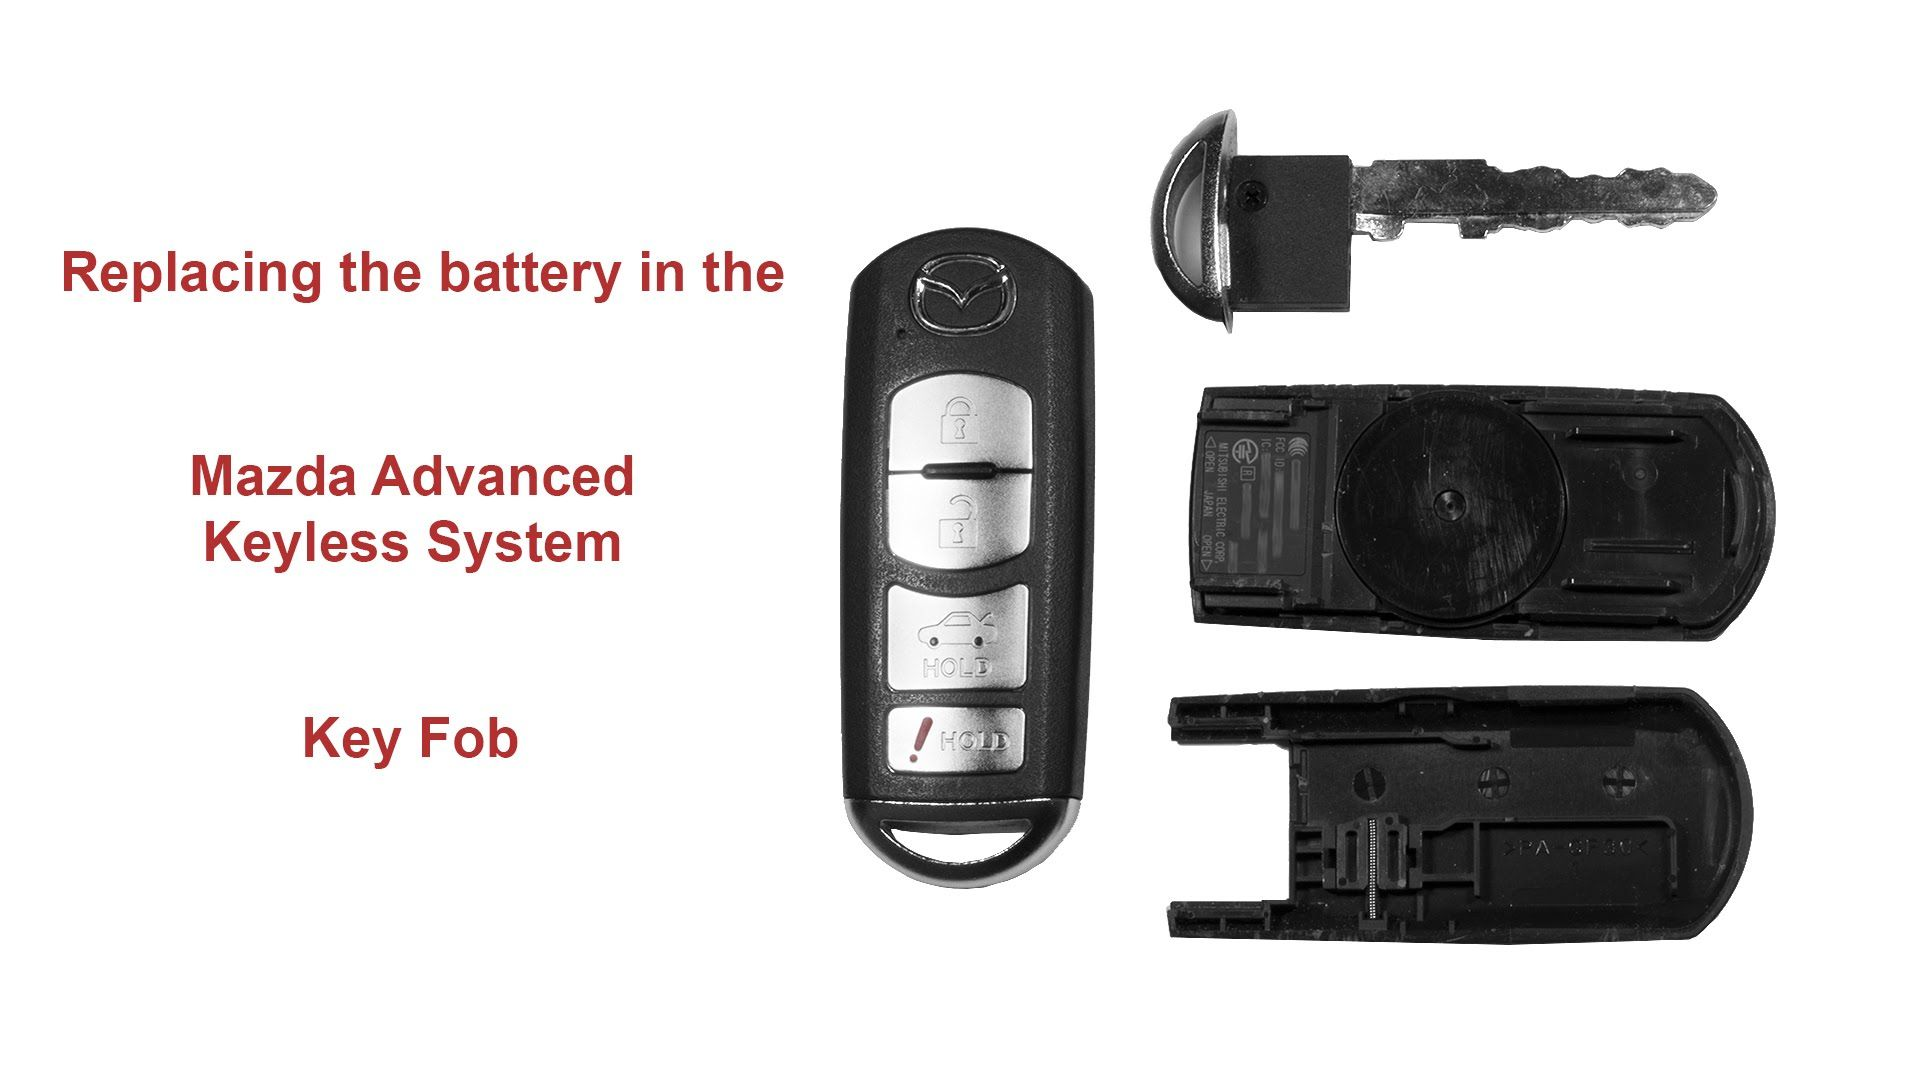 Delightful Replacing The Battery In The Mazda Advanced Keyless System Key Fob